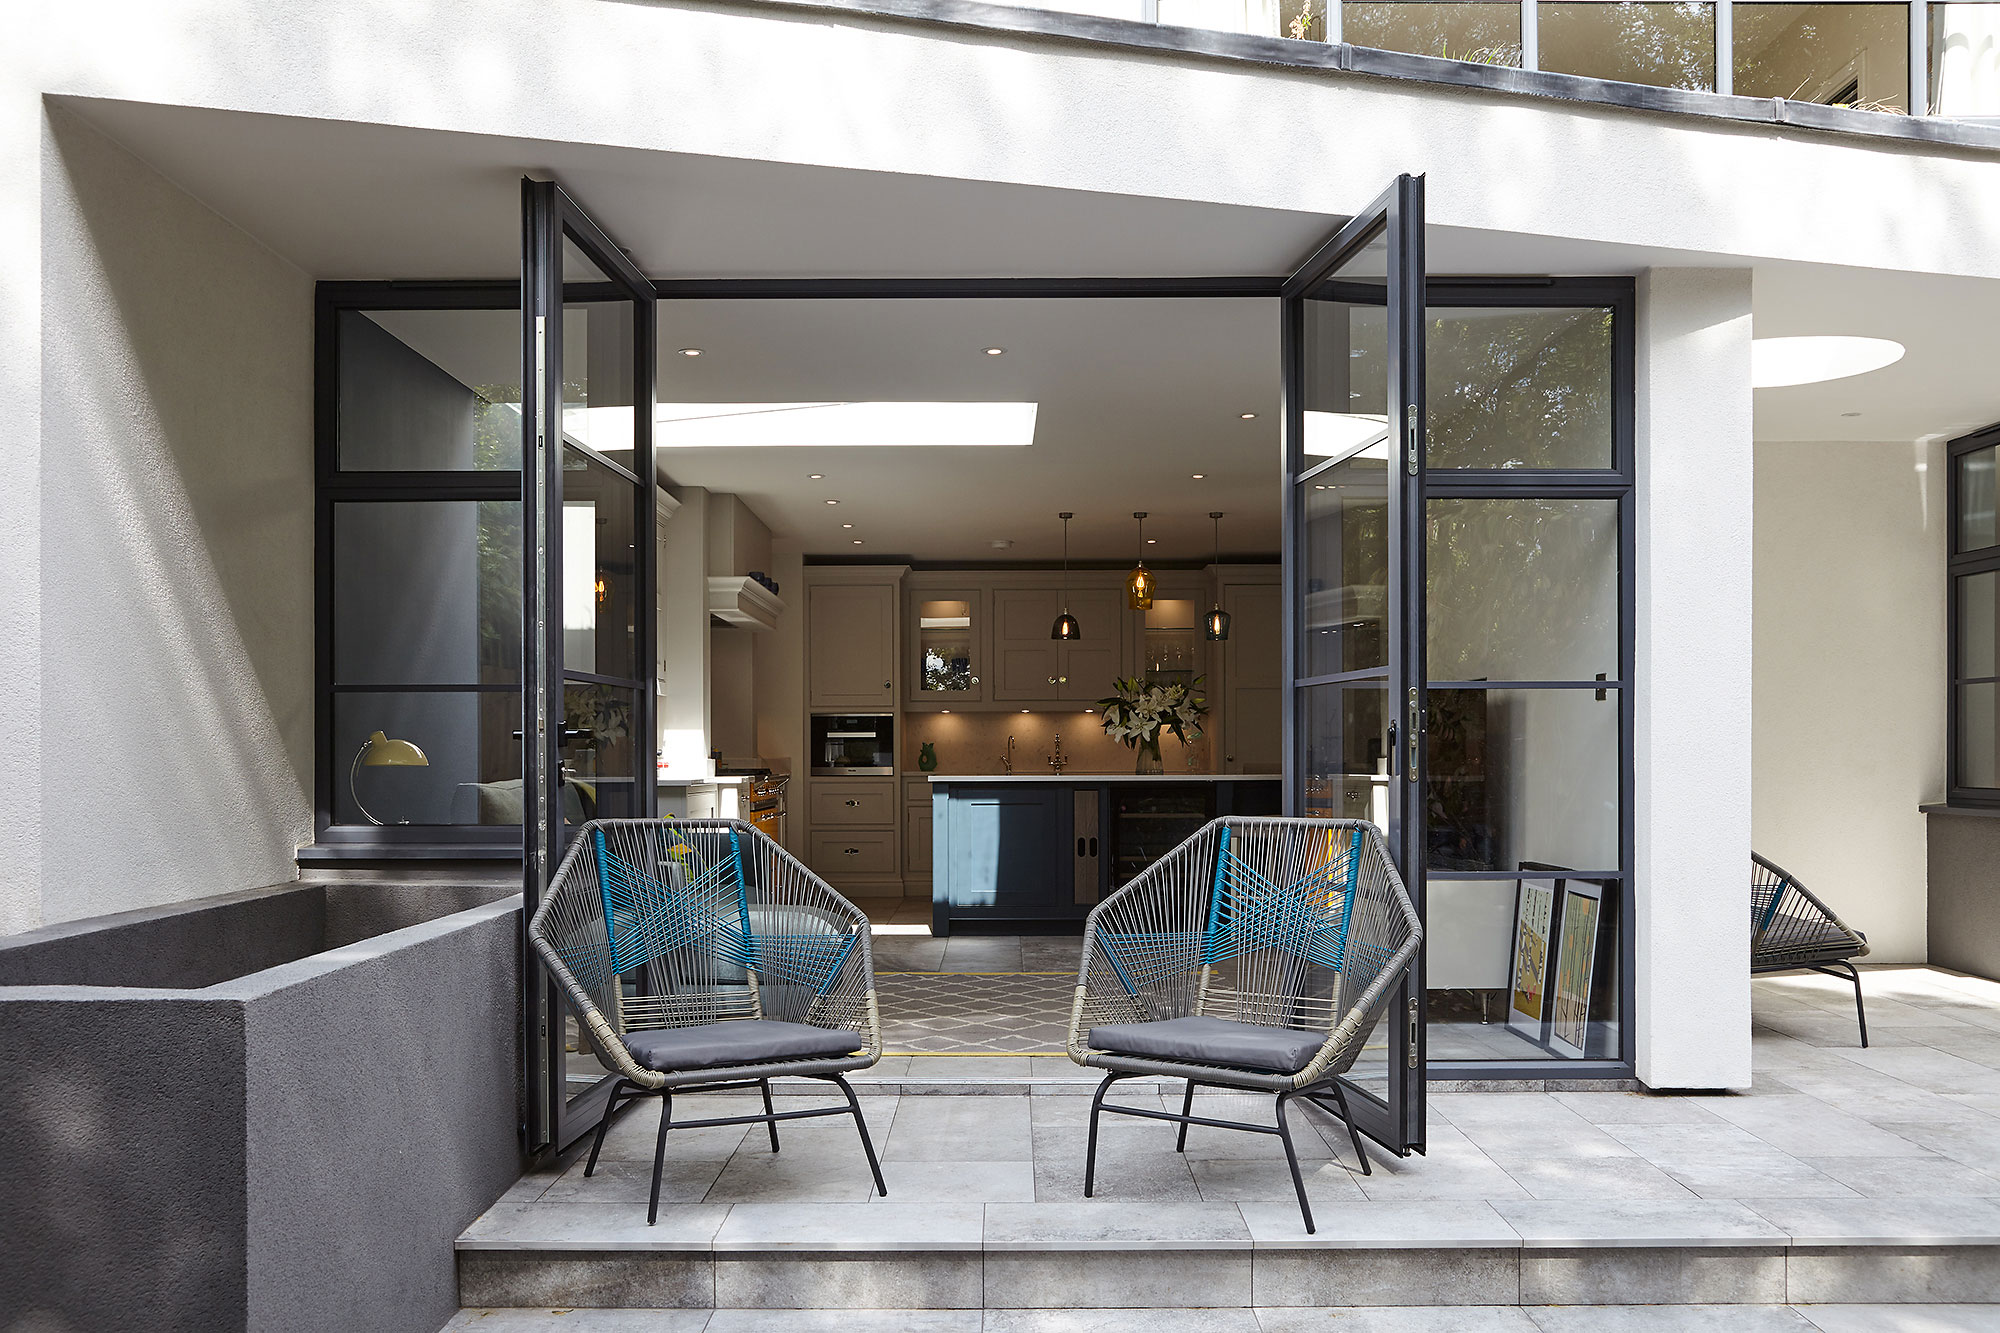 we can build a nice patio are for you to relax in with your new extension